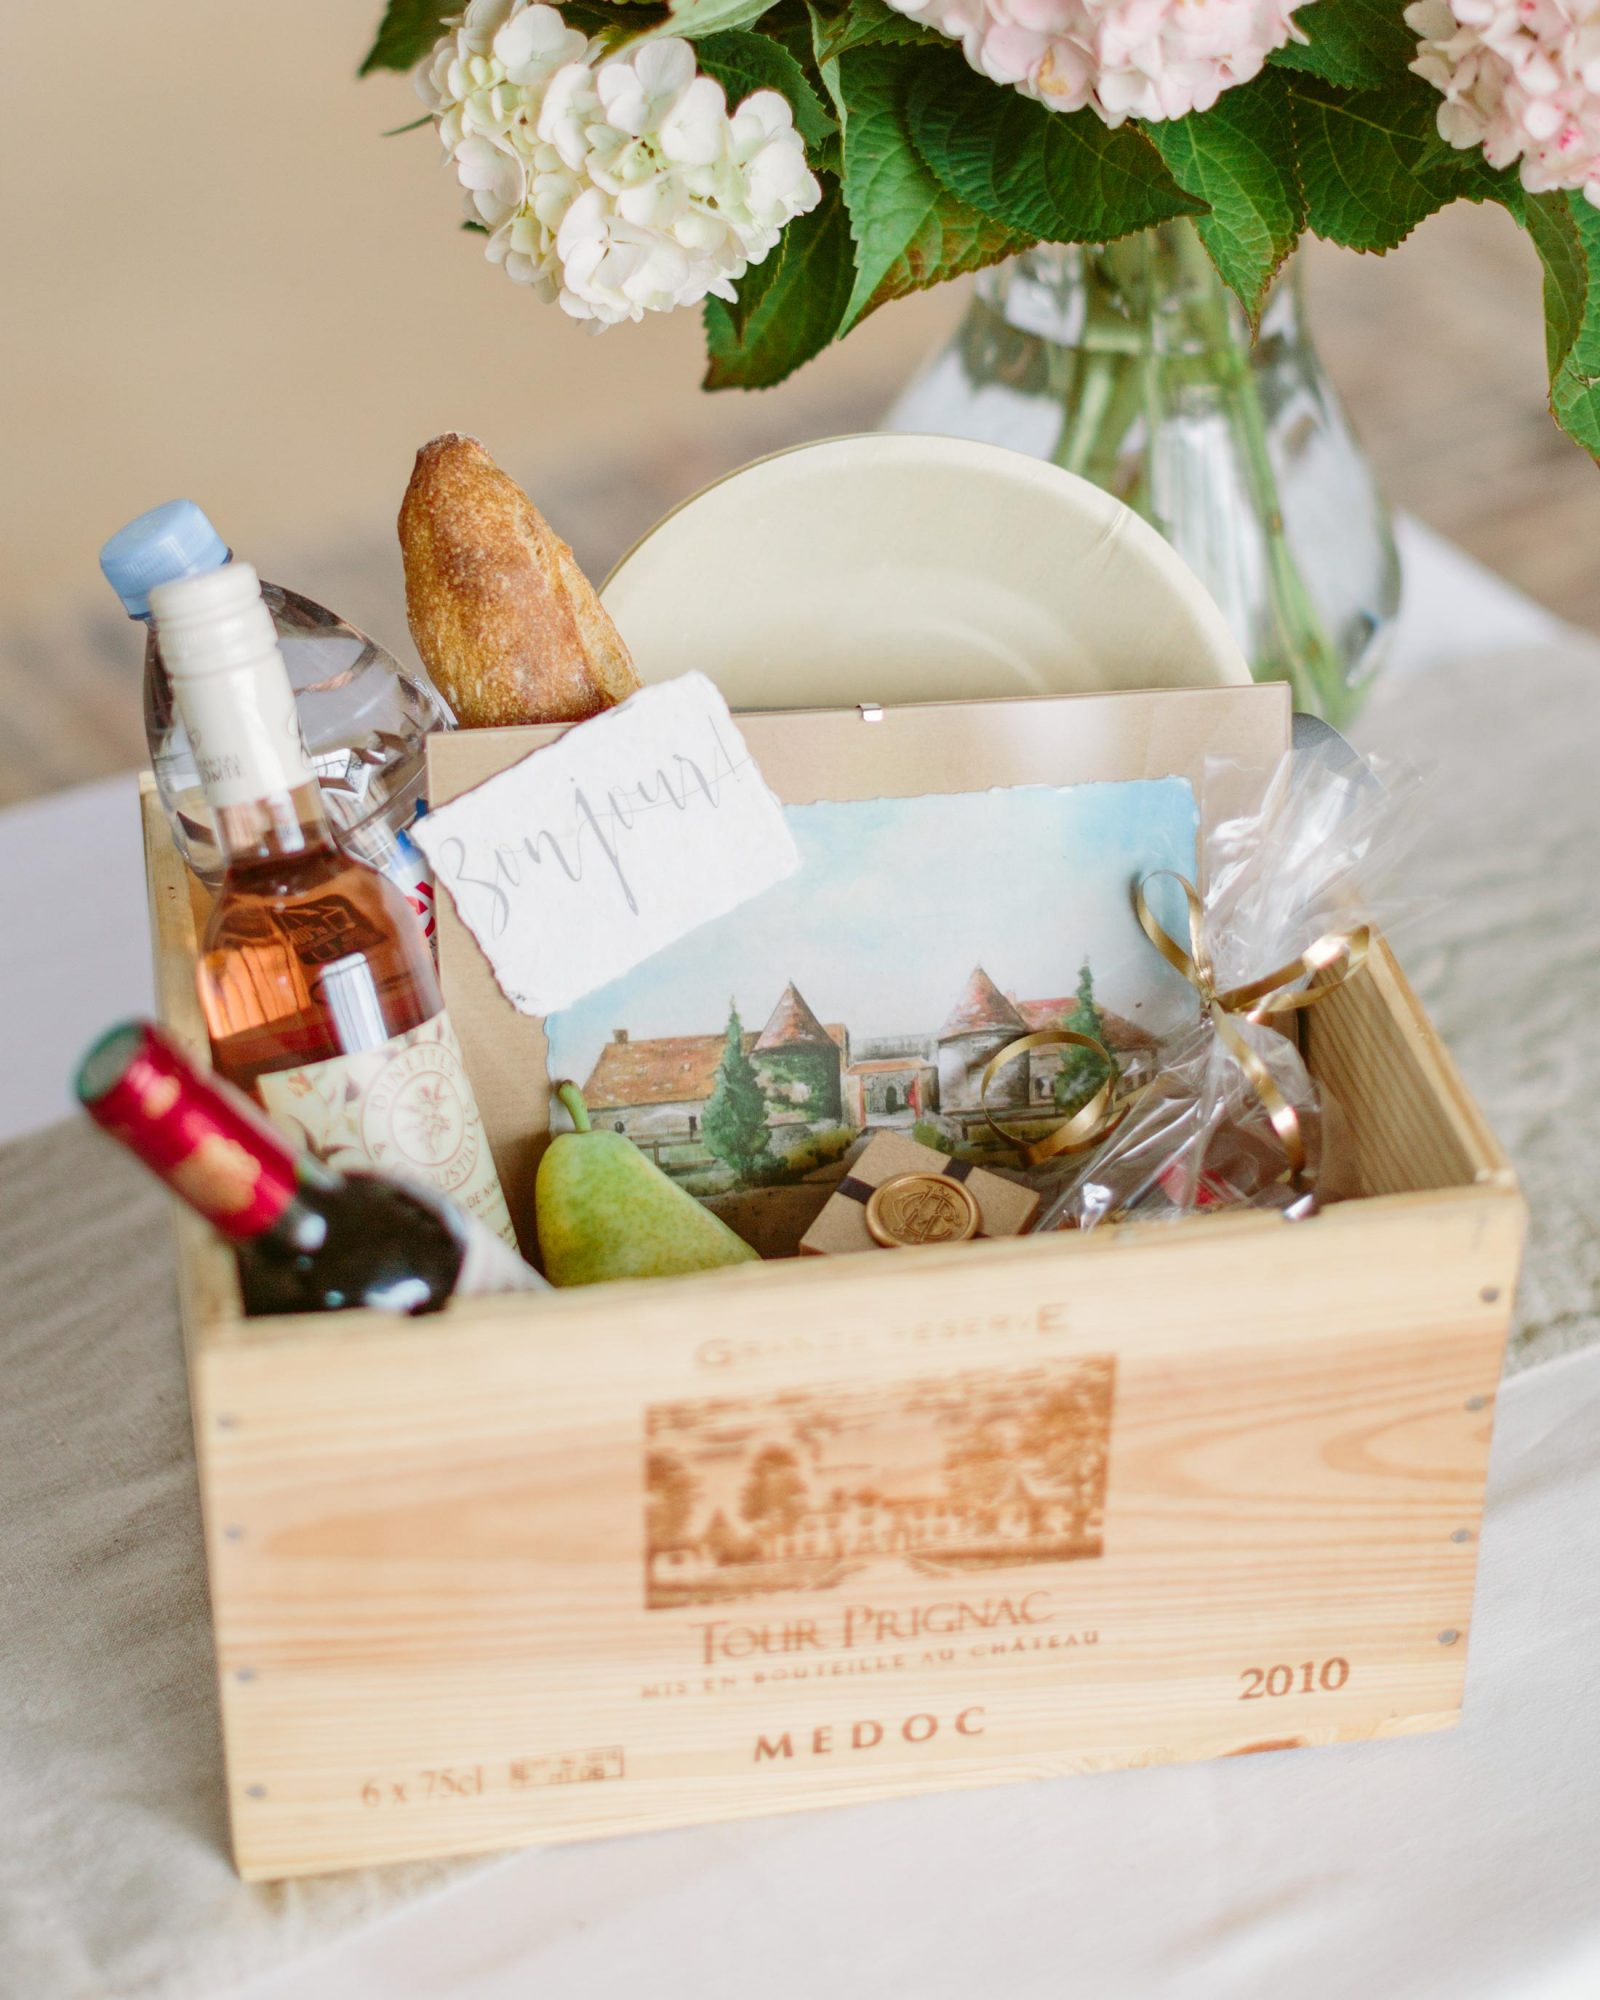 Upon arrival, guests received a French wine crate filled with quintessential goodies from Paris. Each box held the fixings for a traditional Parisian picnic including wine, baguettes, cheese pairings, jam, a pear, and disposable wooden plates and cutlery. An illustration of the venue by the mother-of-the-bride, served as a beautiful memory. In addition, guests were surprised at turndown service in their guest rooms, when small, sealed boxes (like the one pictured above) adorned each pillow with a thank-you note. Inside the boxes were Anne-Claire's favorite French chocolates—Maxim's Chocolate!